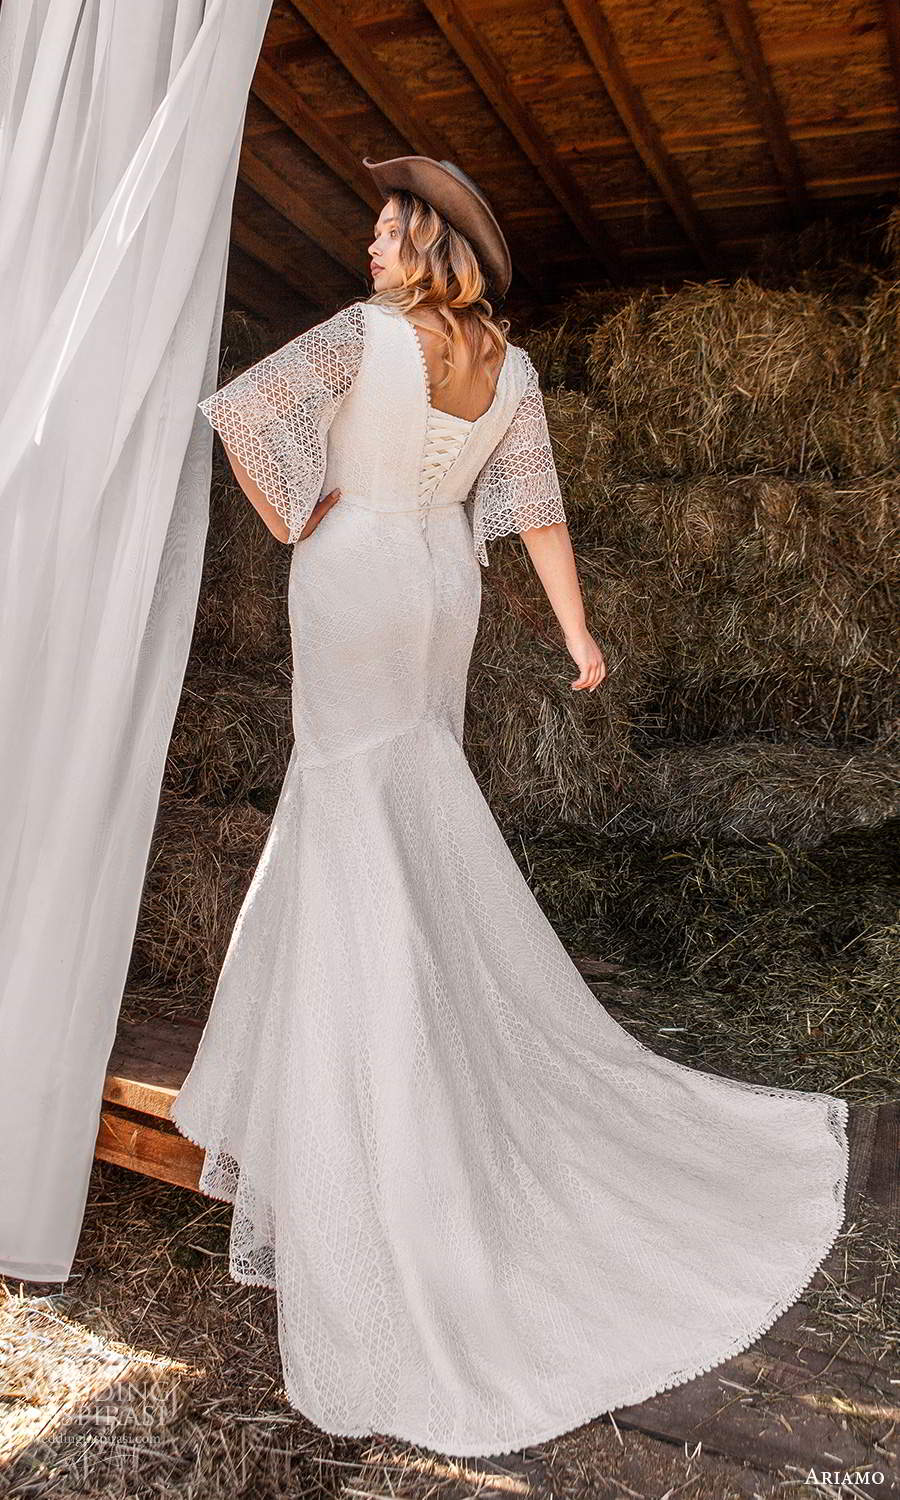 ariamo 2021 plus bridal half sleeves v neckline fully embellished fit flare wedding dress chapel train (9) bv